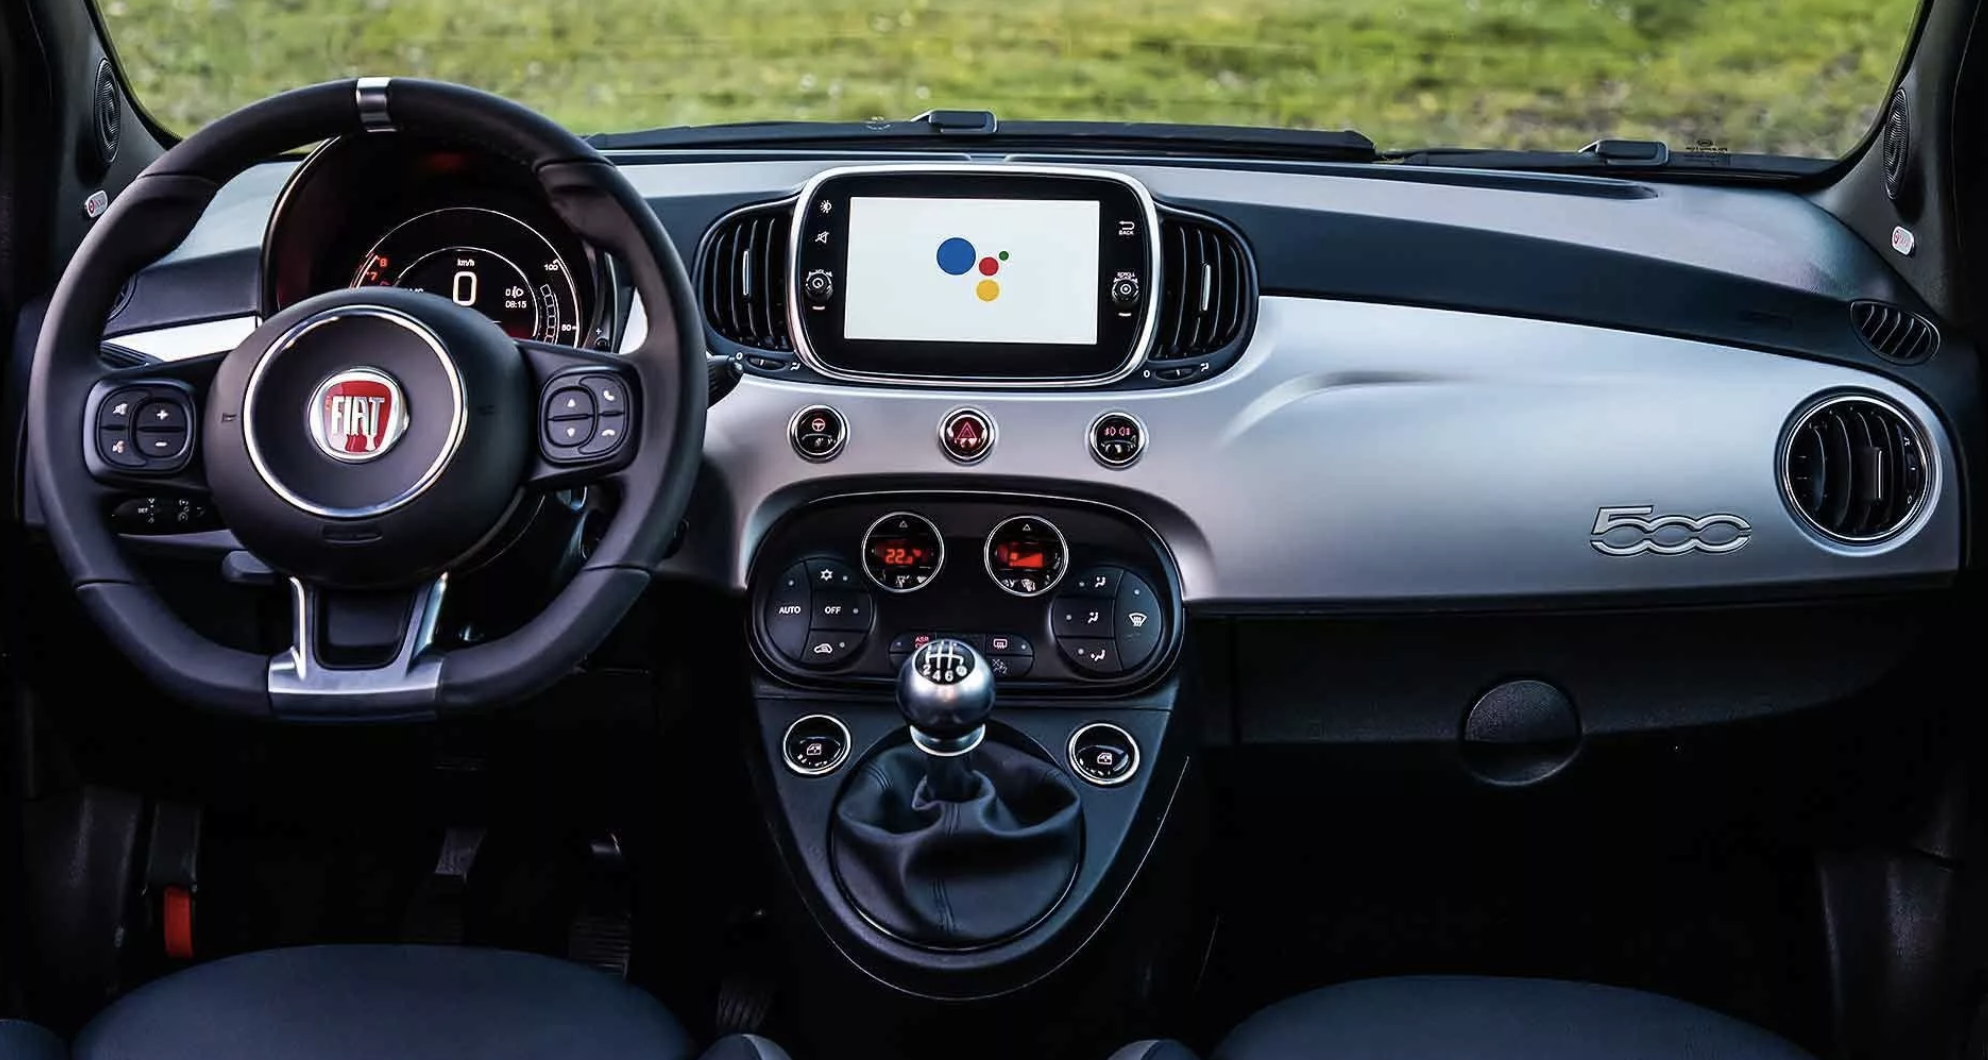 cars with built-in google voice assistant